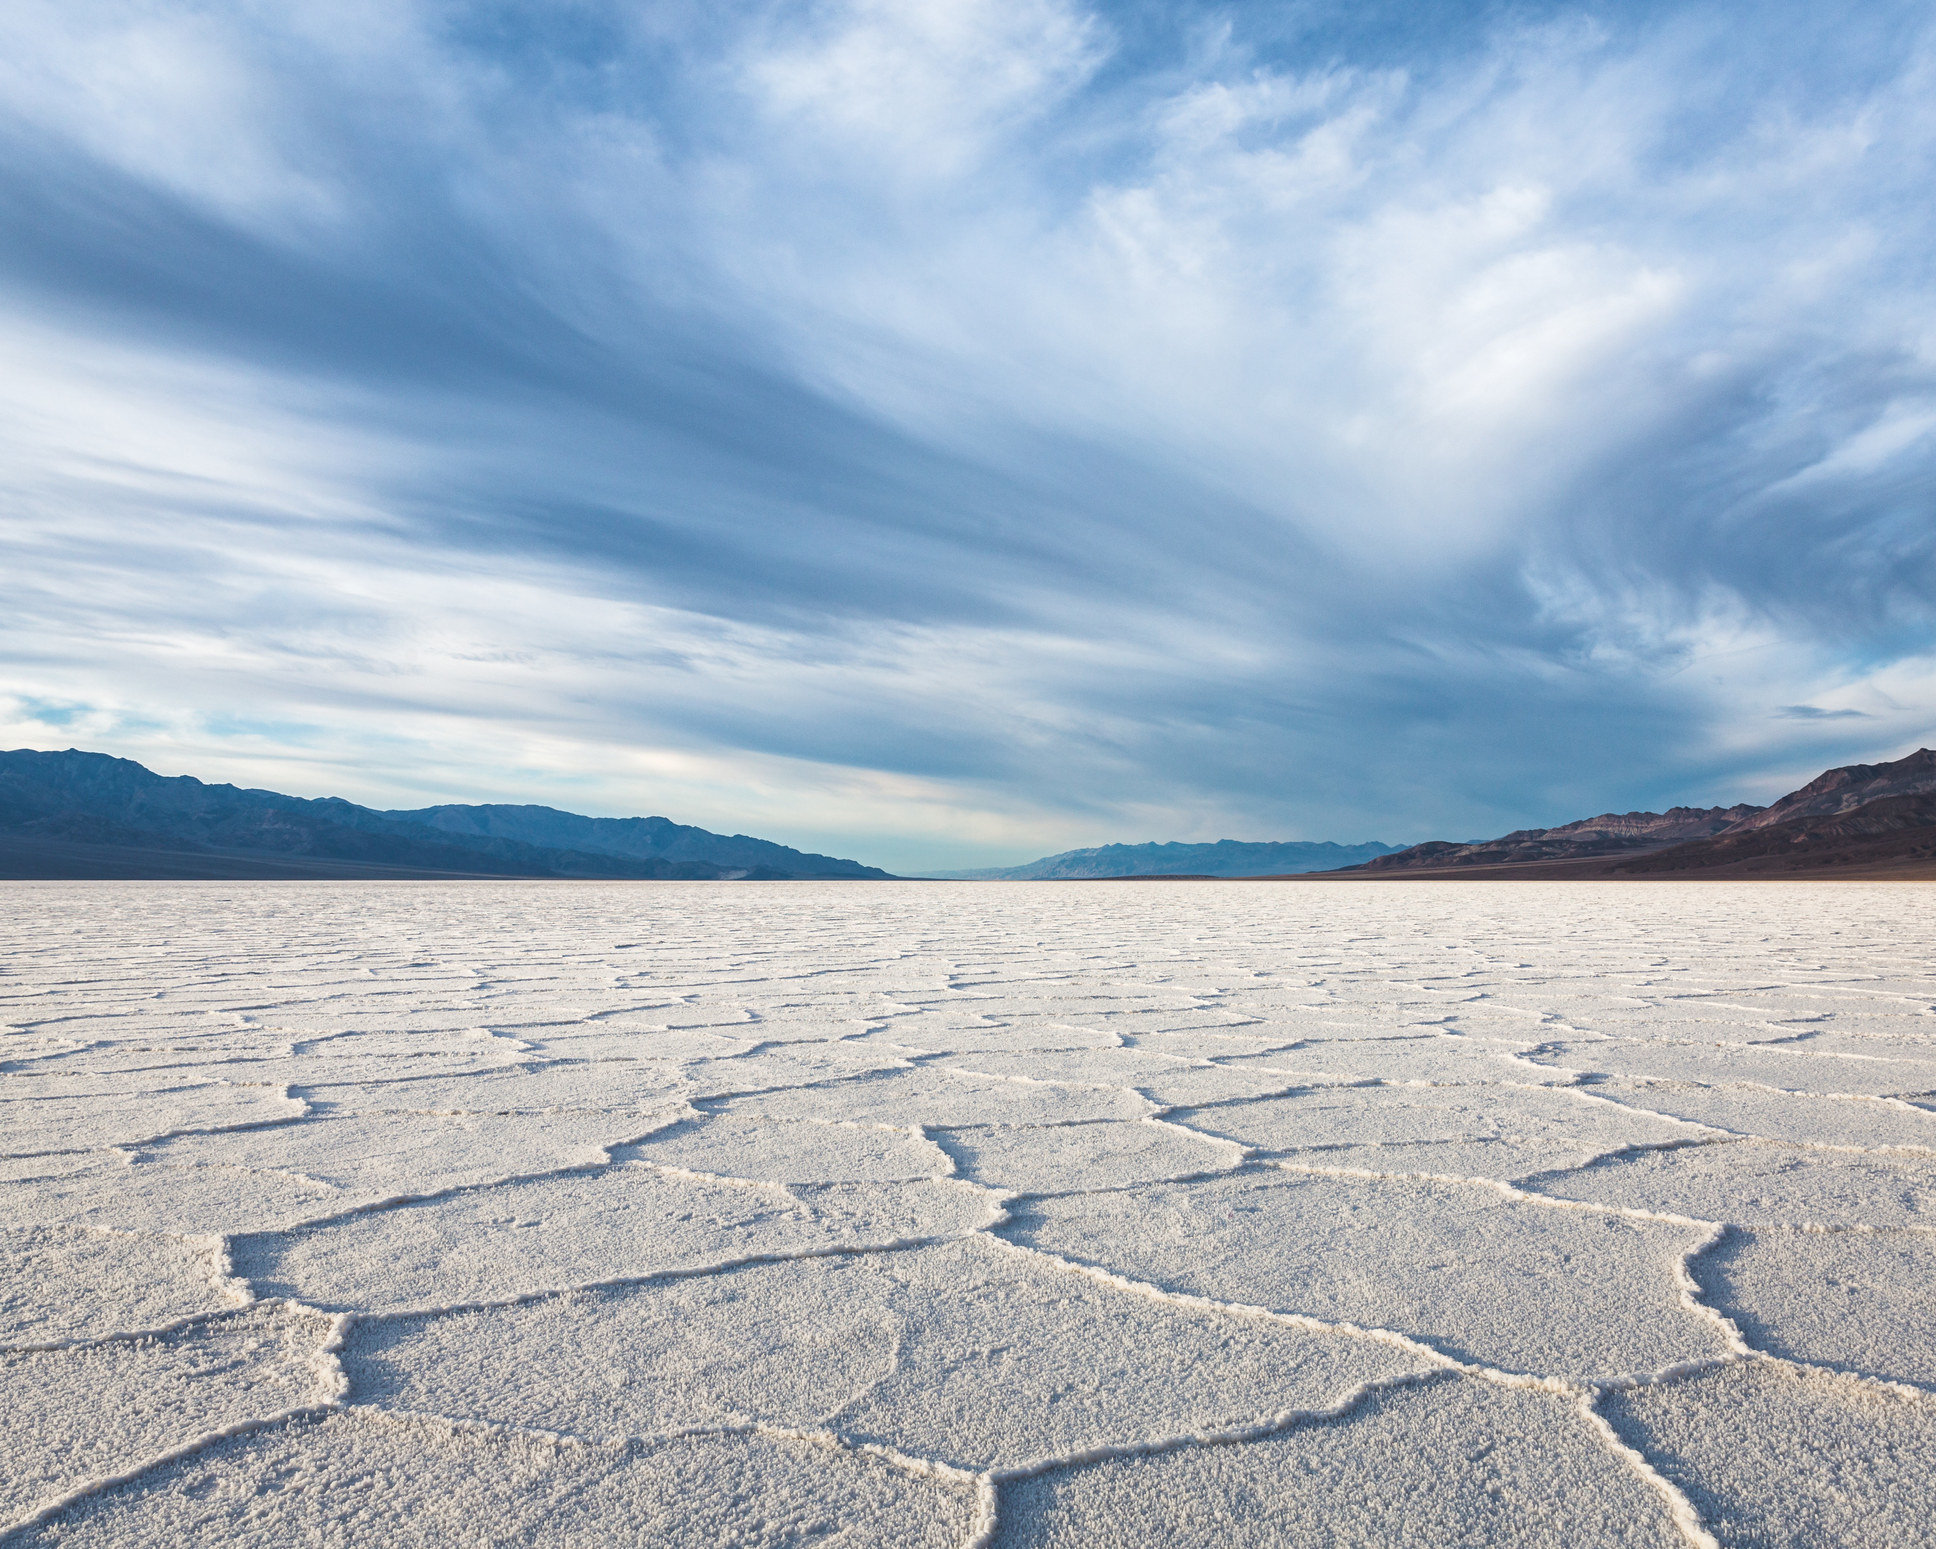 a vast white salt flat that looks like its from another planet